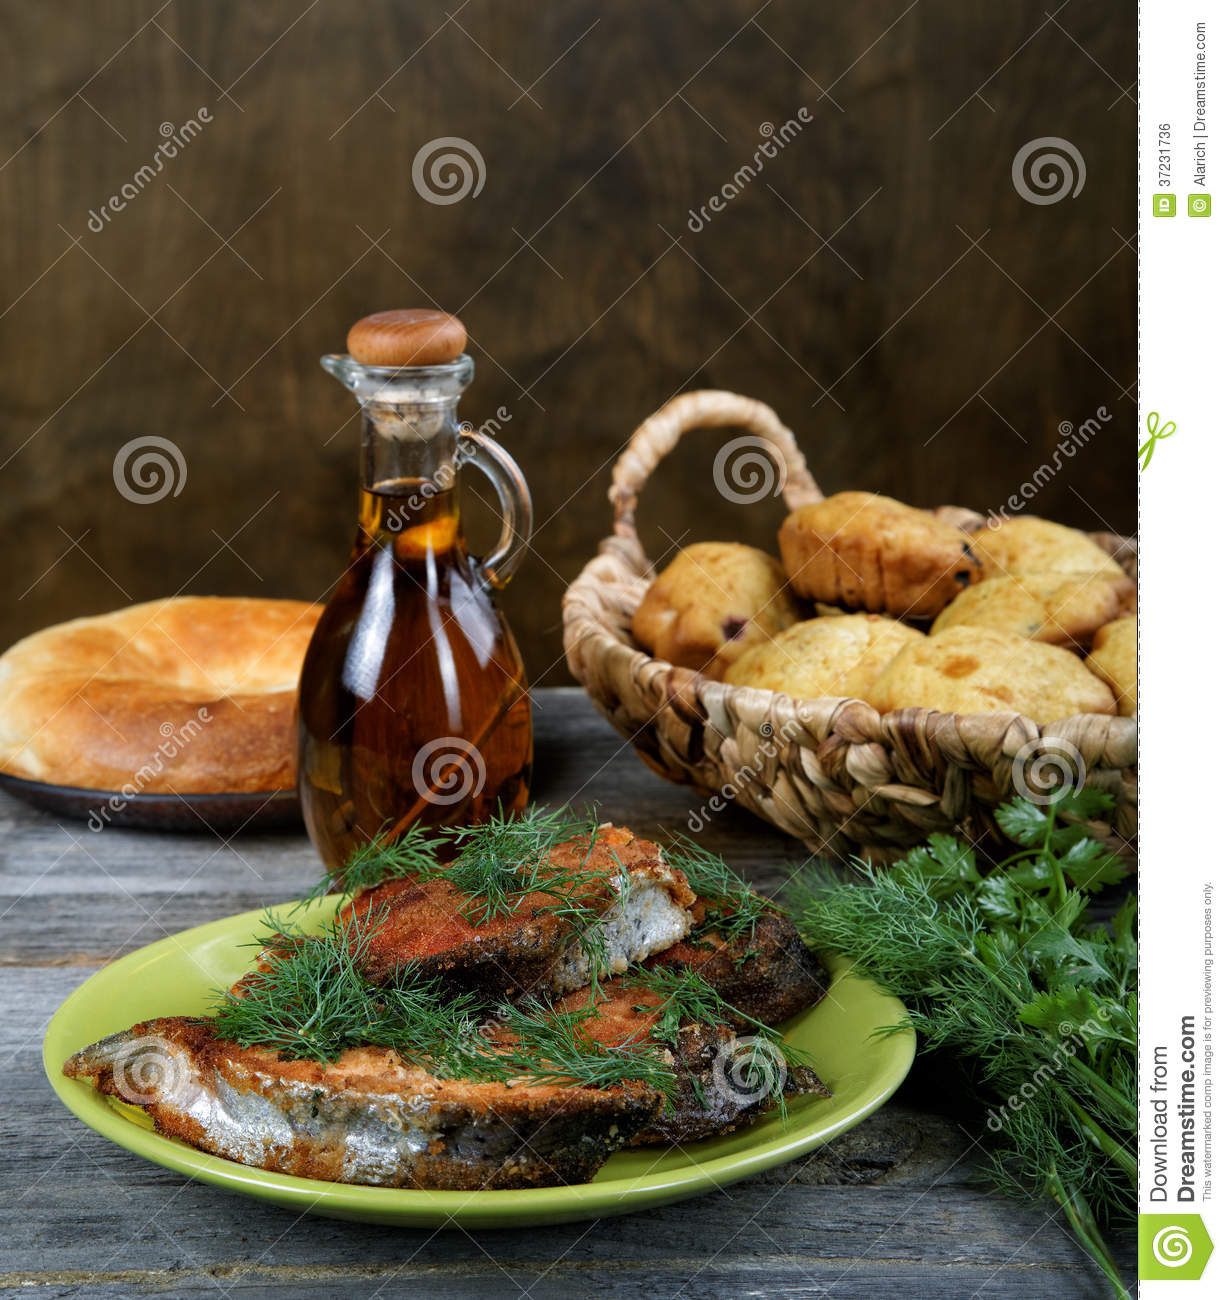 Fried fish with greens and oil royalty free stock image for Frying fish in olive oil